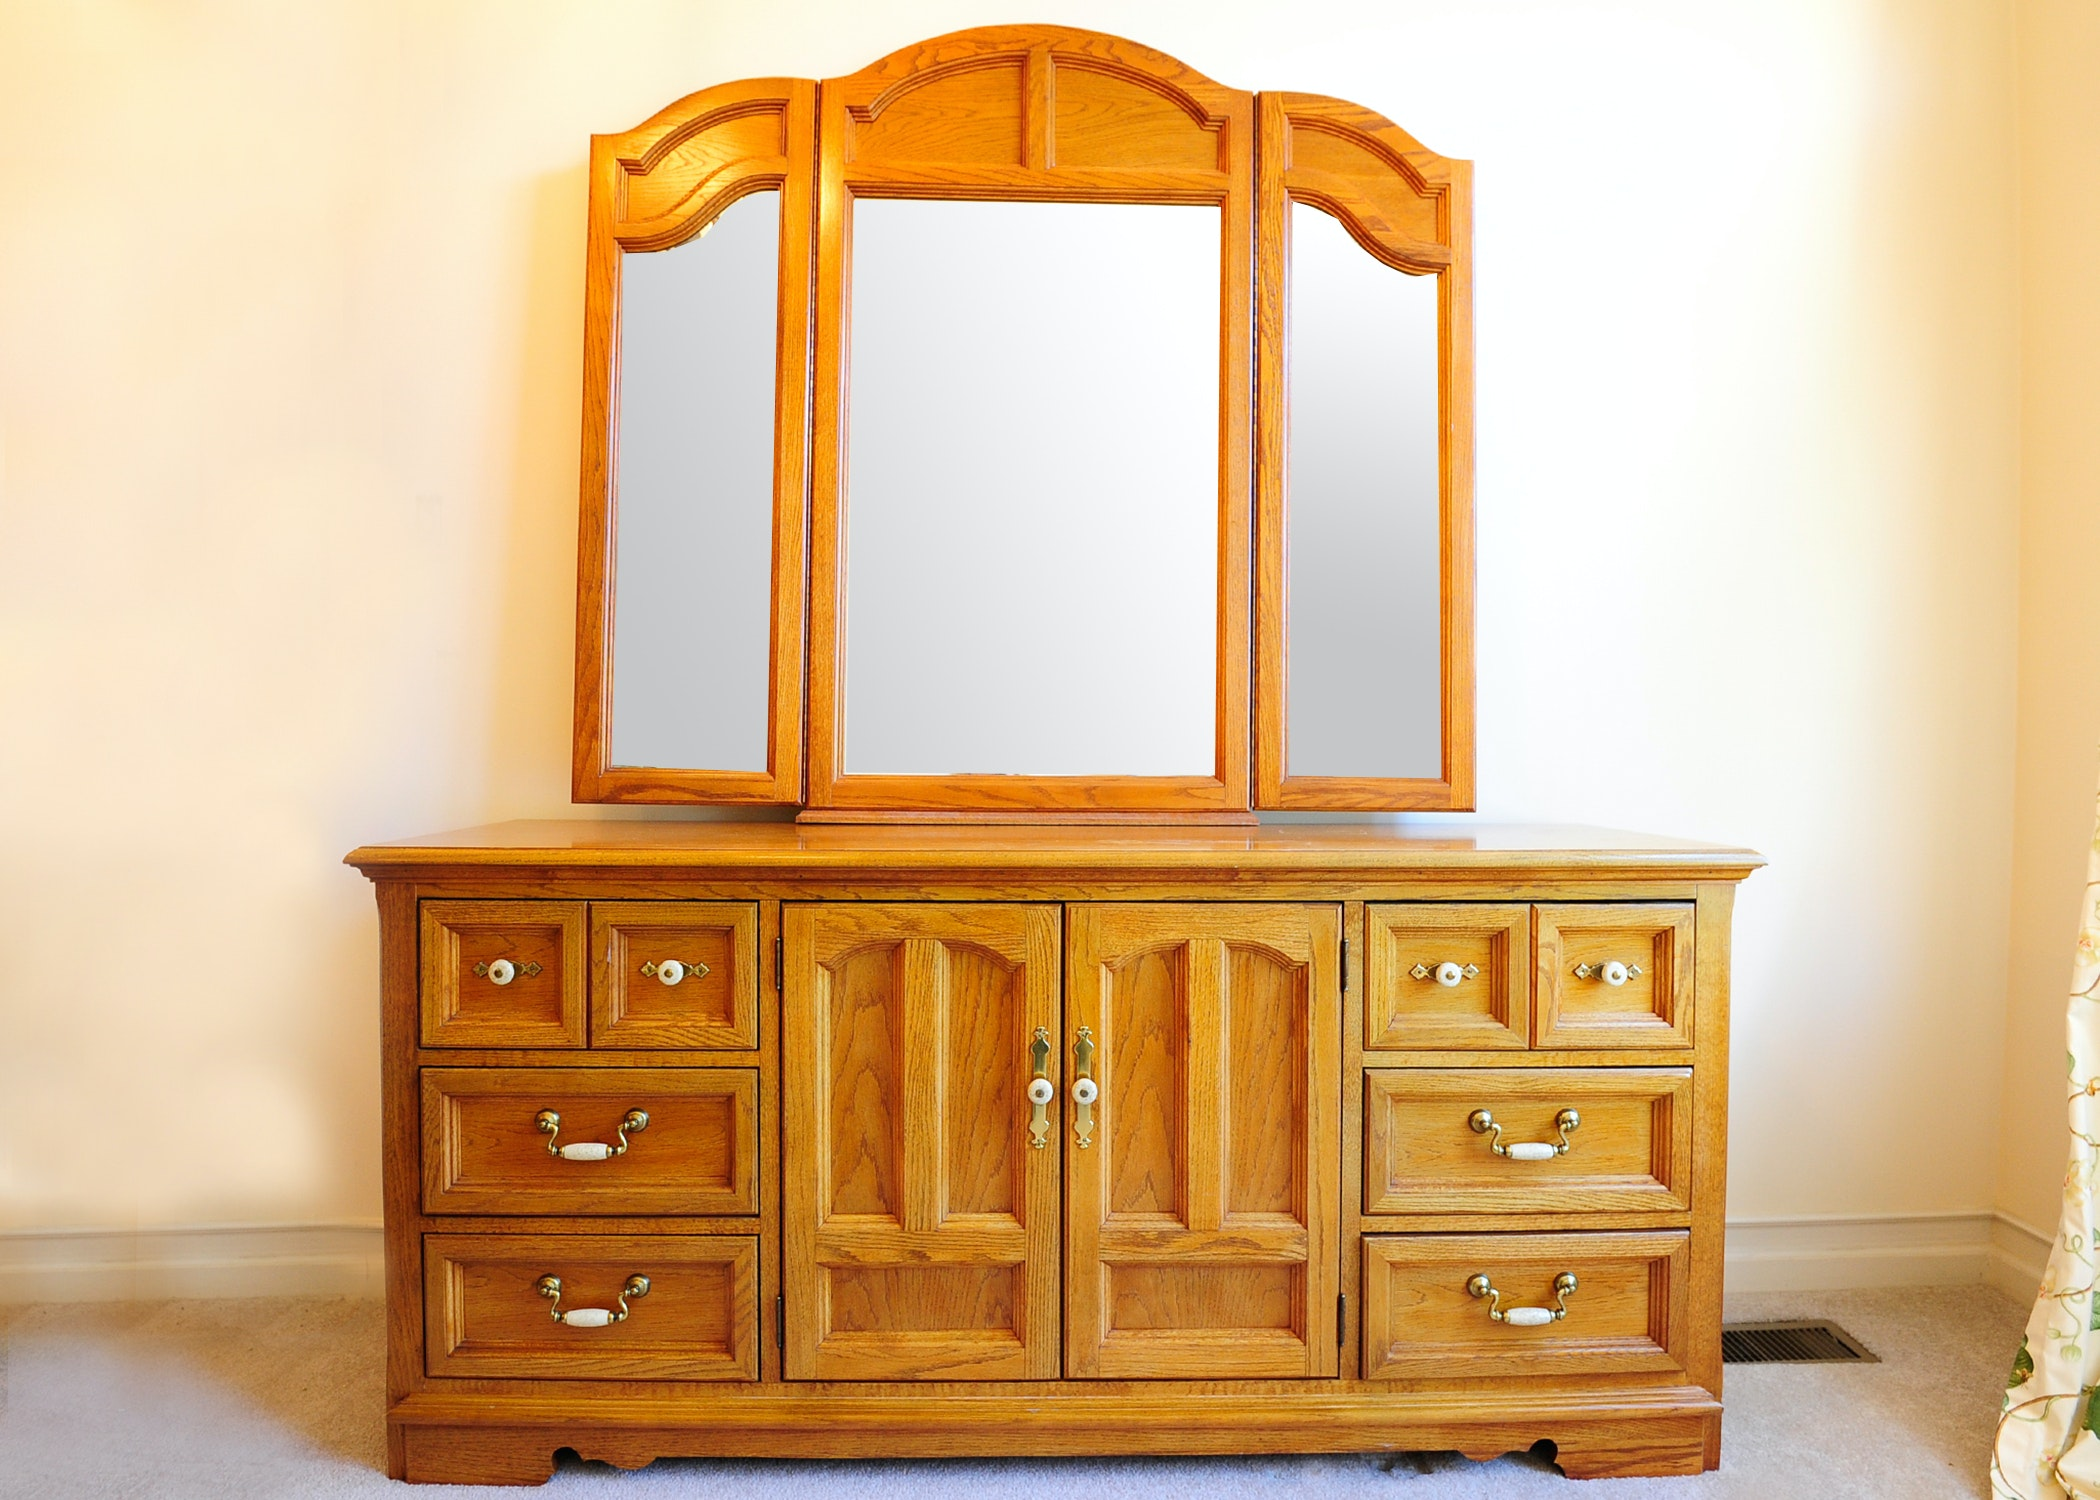 Thomasville Furniture Oak Dresser With Tri View Mirror ...